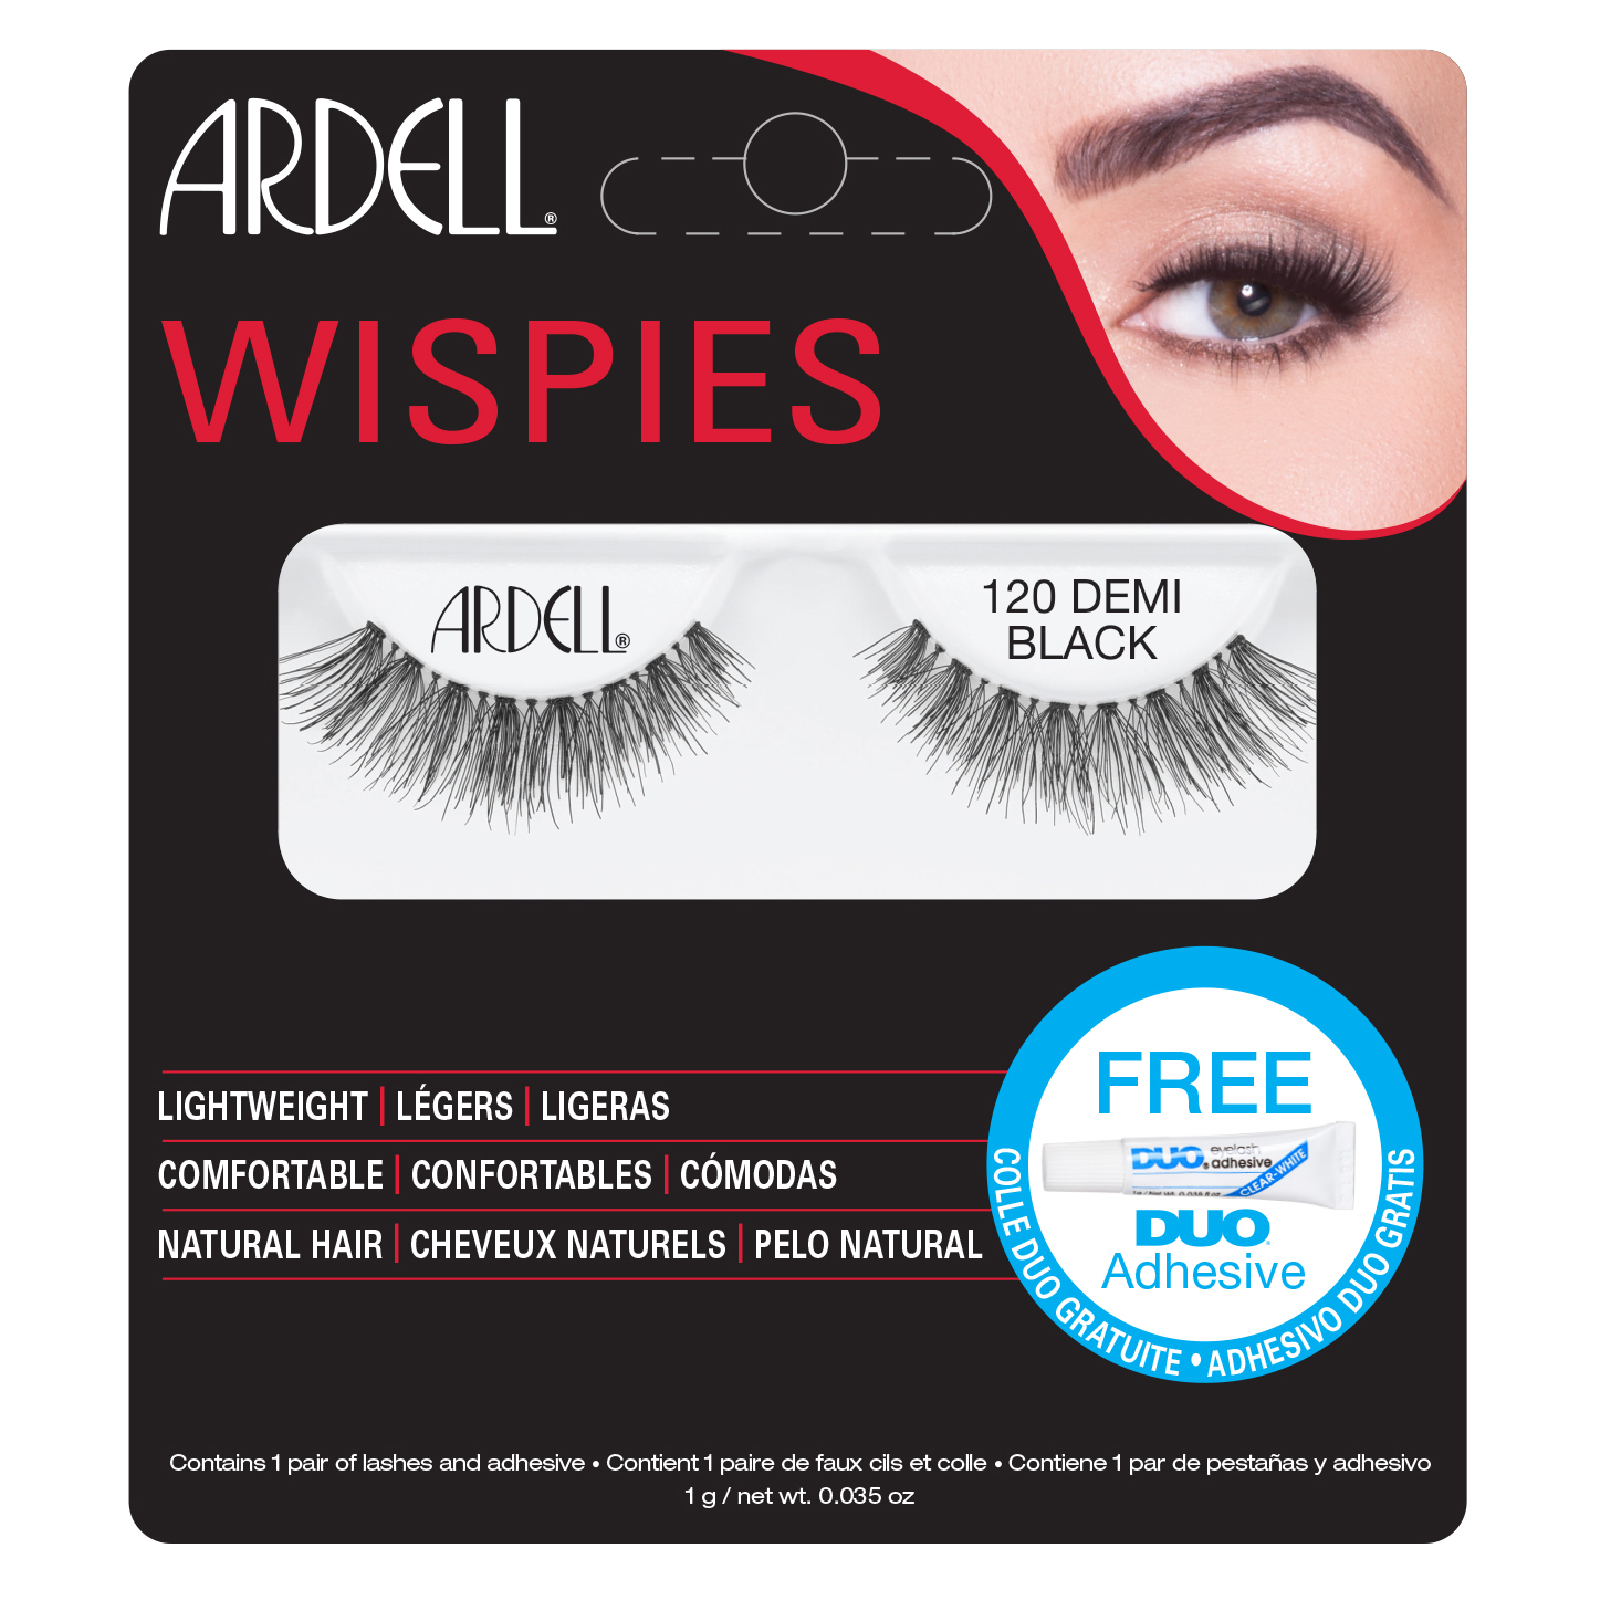 80bb1fdc960 Ardell Demi Wispies False Eyelashes - 120 Black | Free Shipping |  Lookfantastic